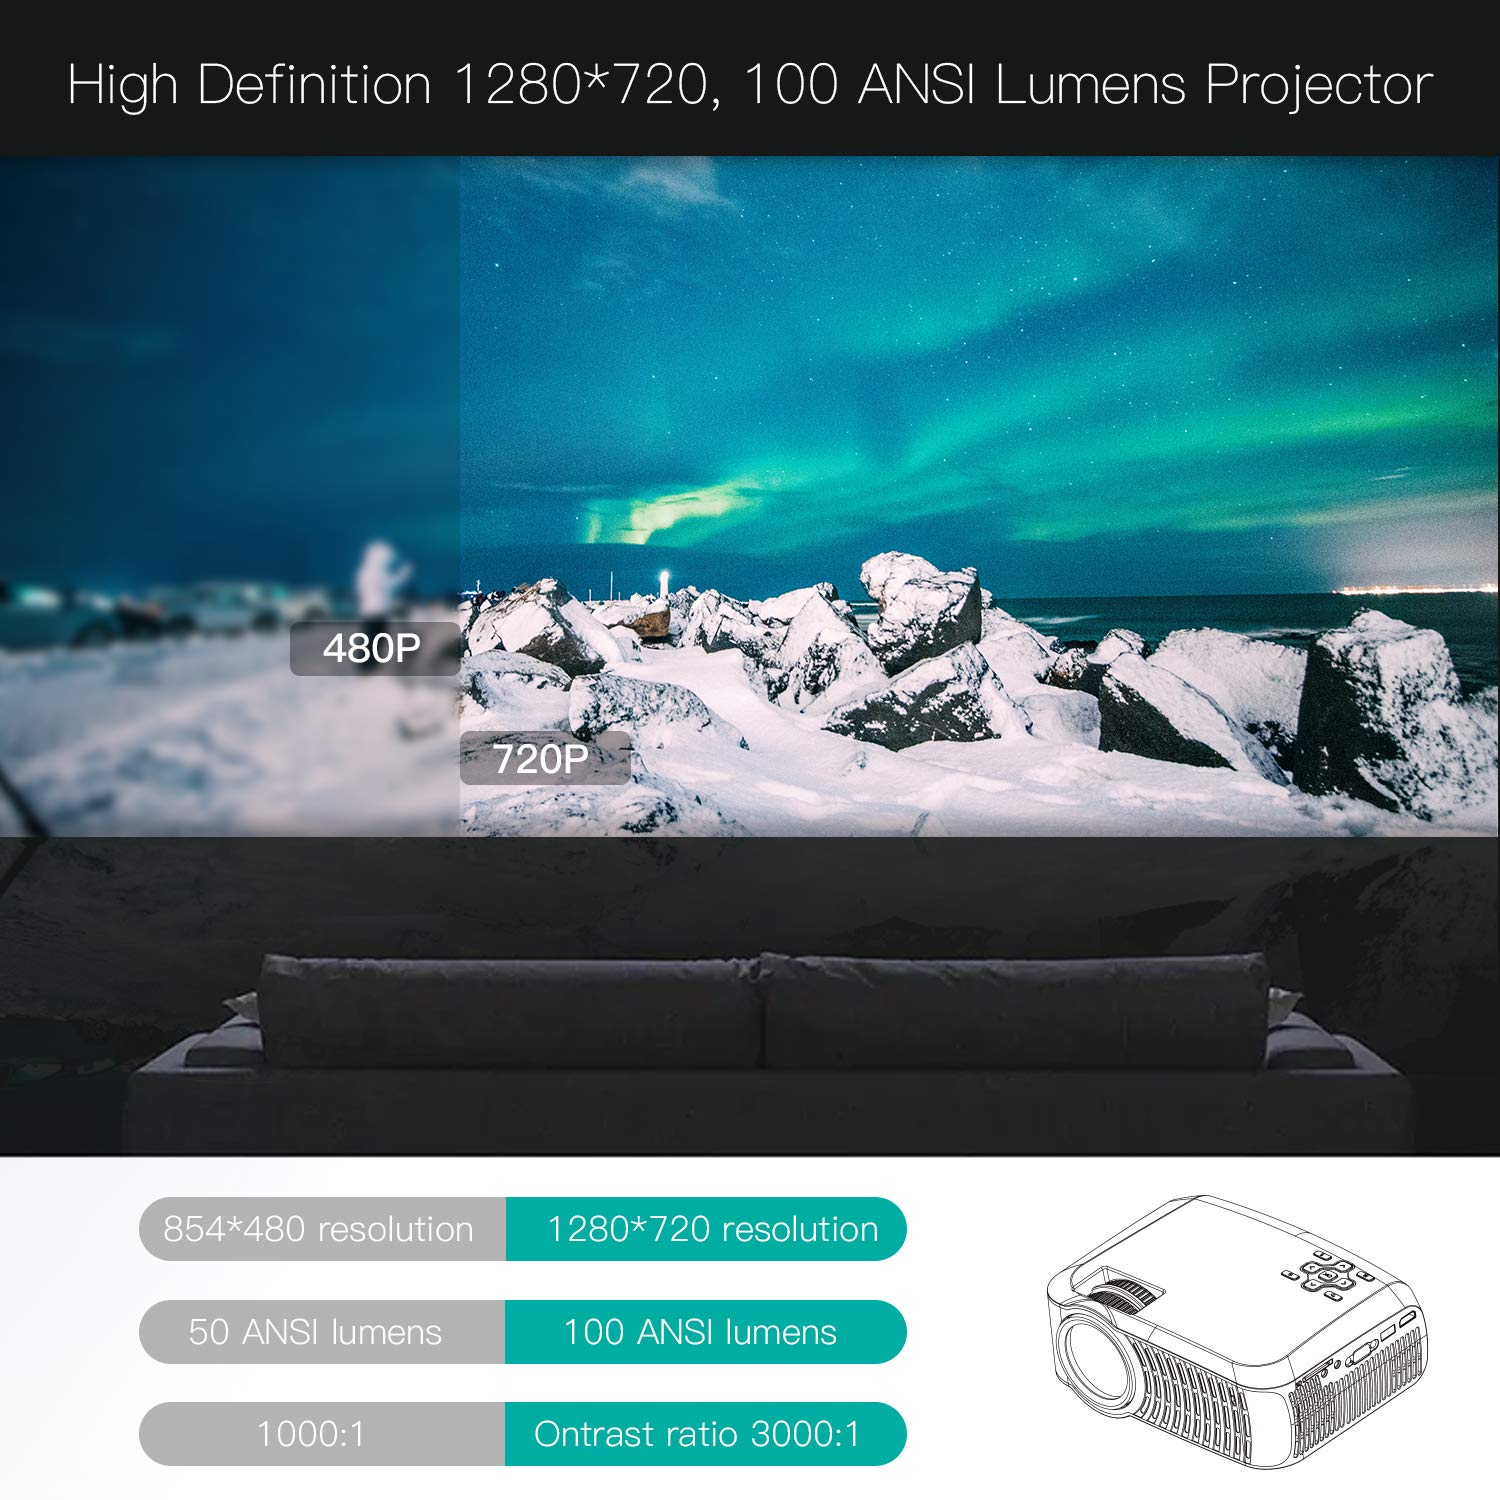 Projector, ABOX A2 LED Movie Video Projector with Full HD Native 720p, 100 ANSI Lumen, 180'' Big Screen, Hifi Speaker, Support 1080p with HDMI/USB/SD Card/VGA/AV Ports For Home Theater/Laptop/TV/Phones by GooBang Doo (Image #4)